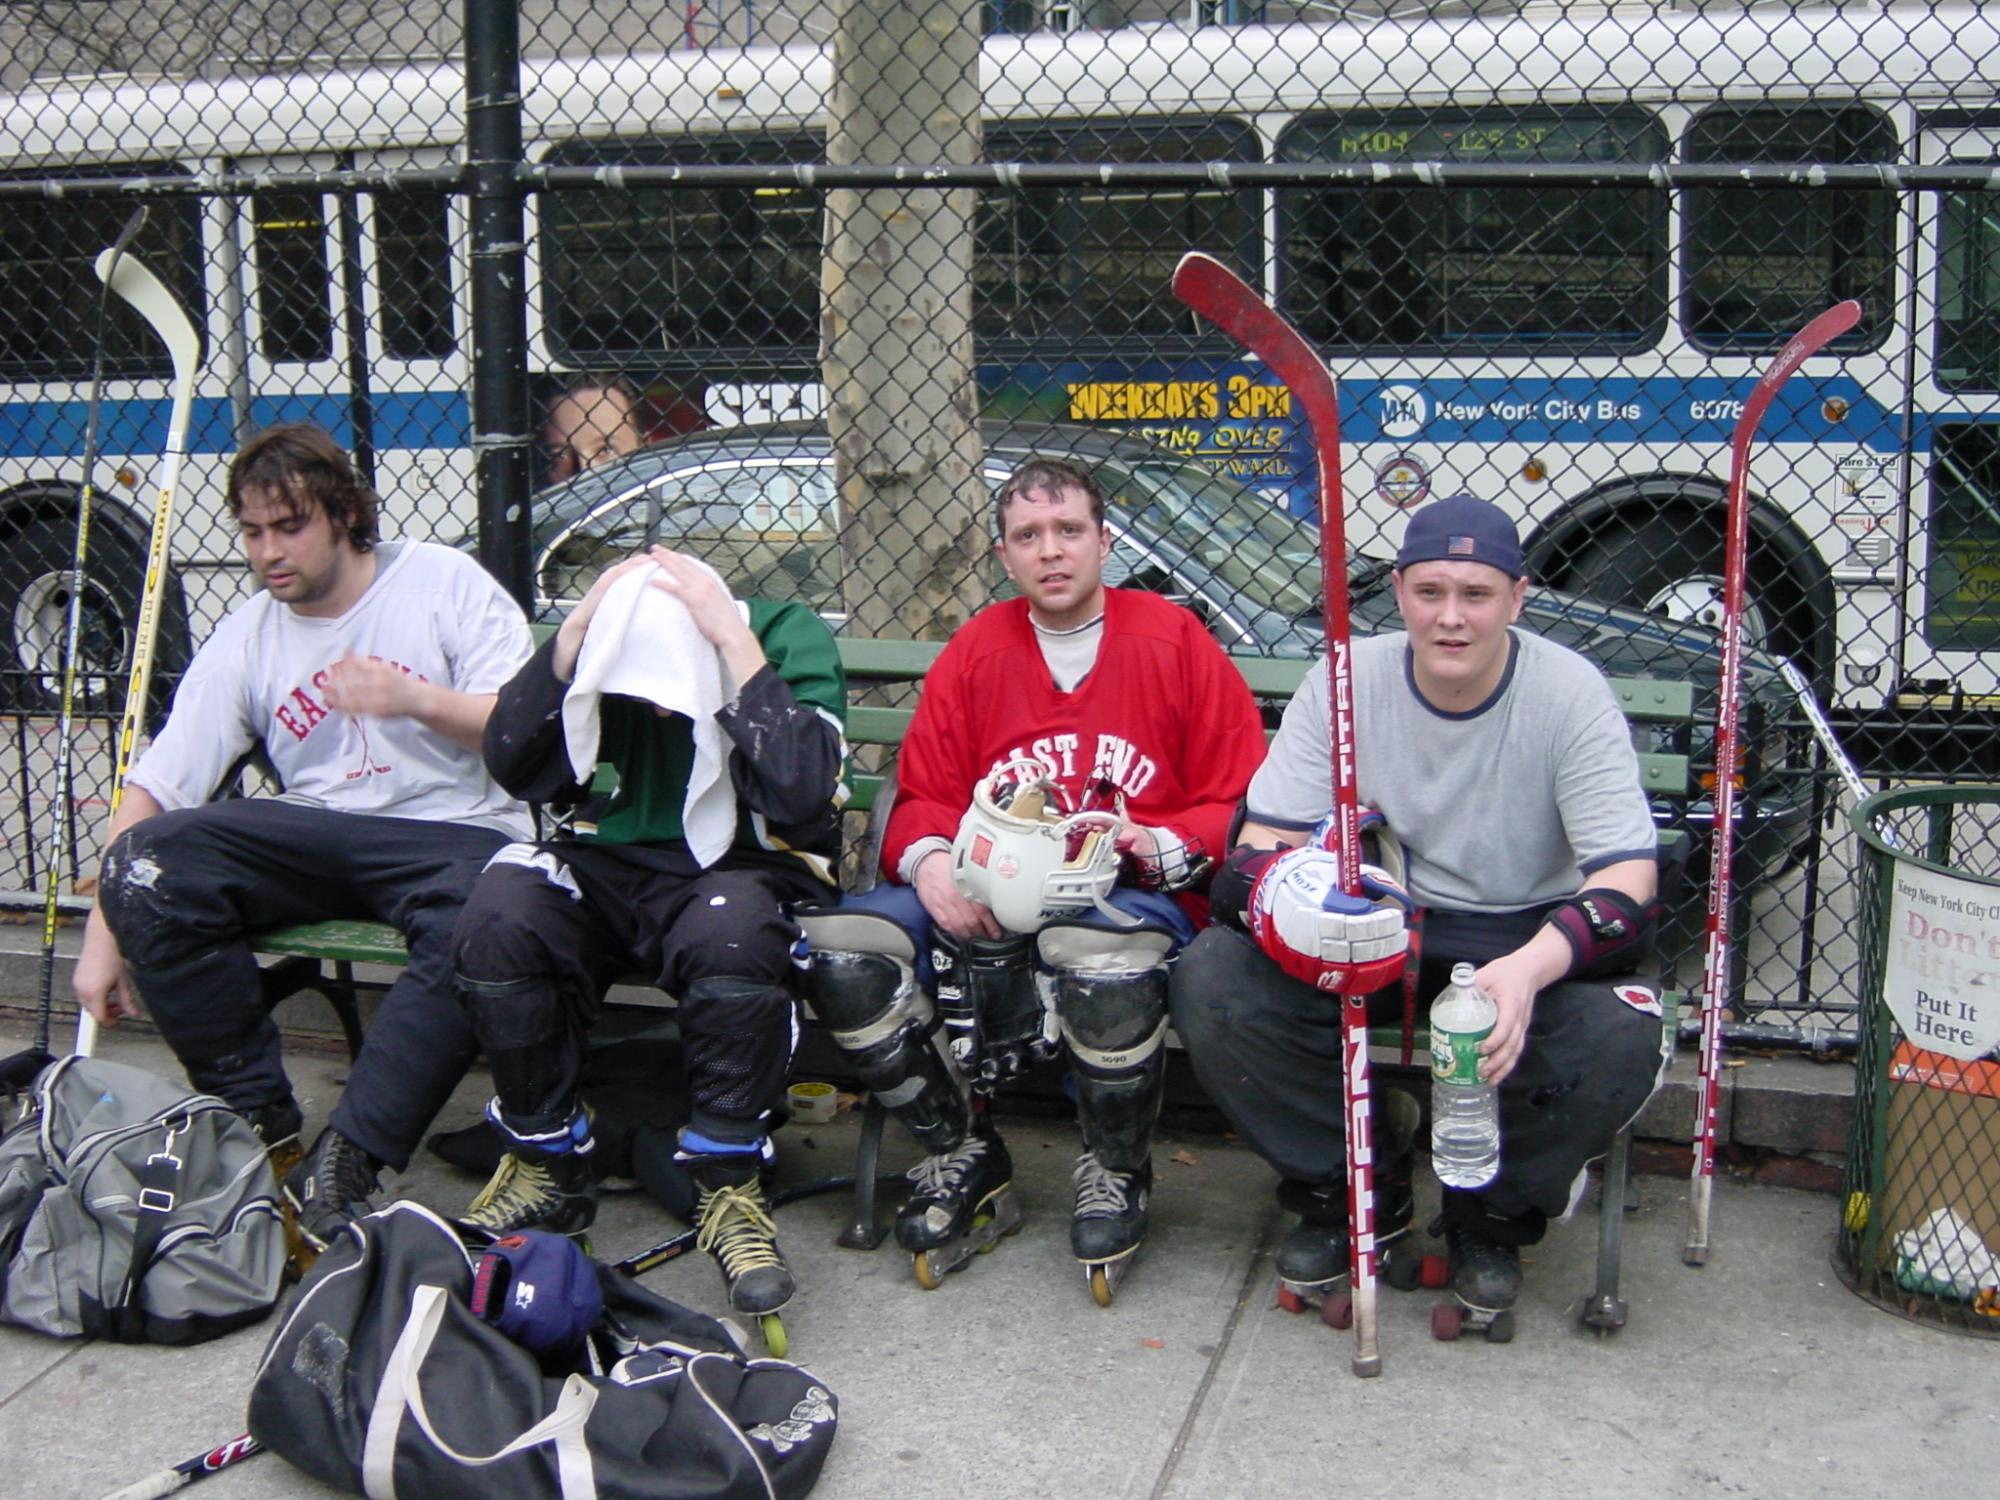 East End Roller Hockey Home Page